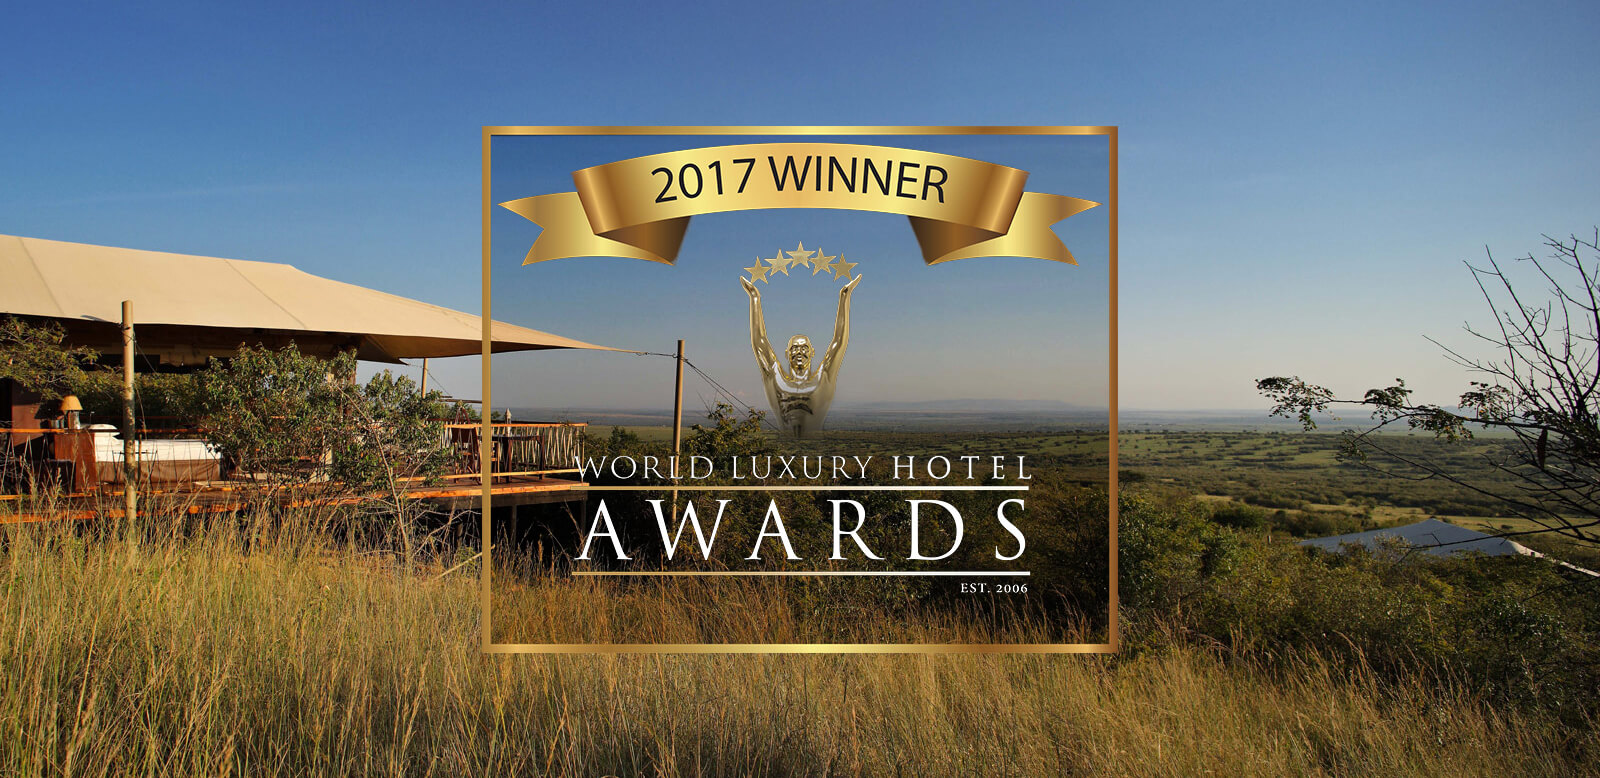 Mara bushtops gewinnt world luxury hotel award 2017 for Luxury hotel awards